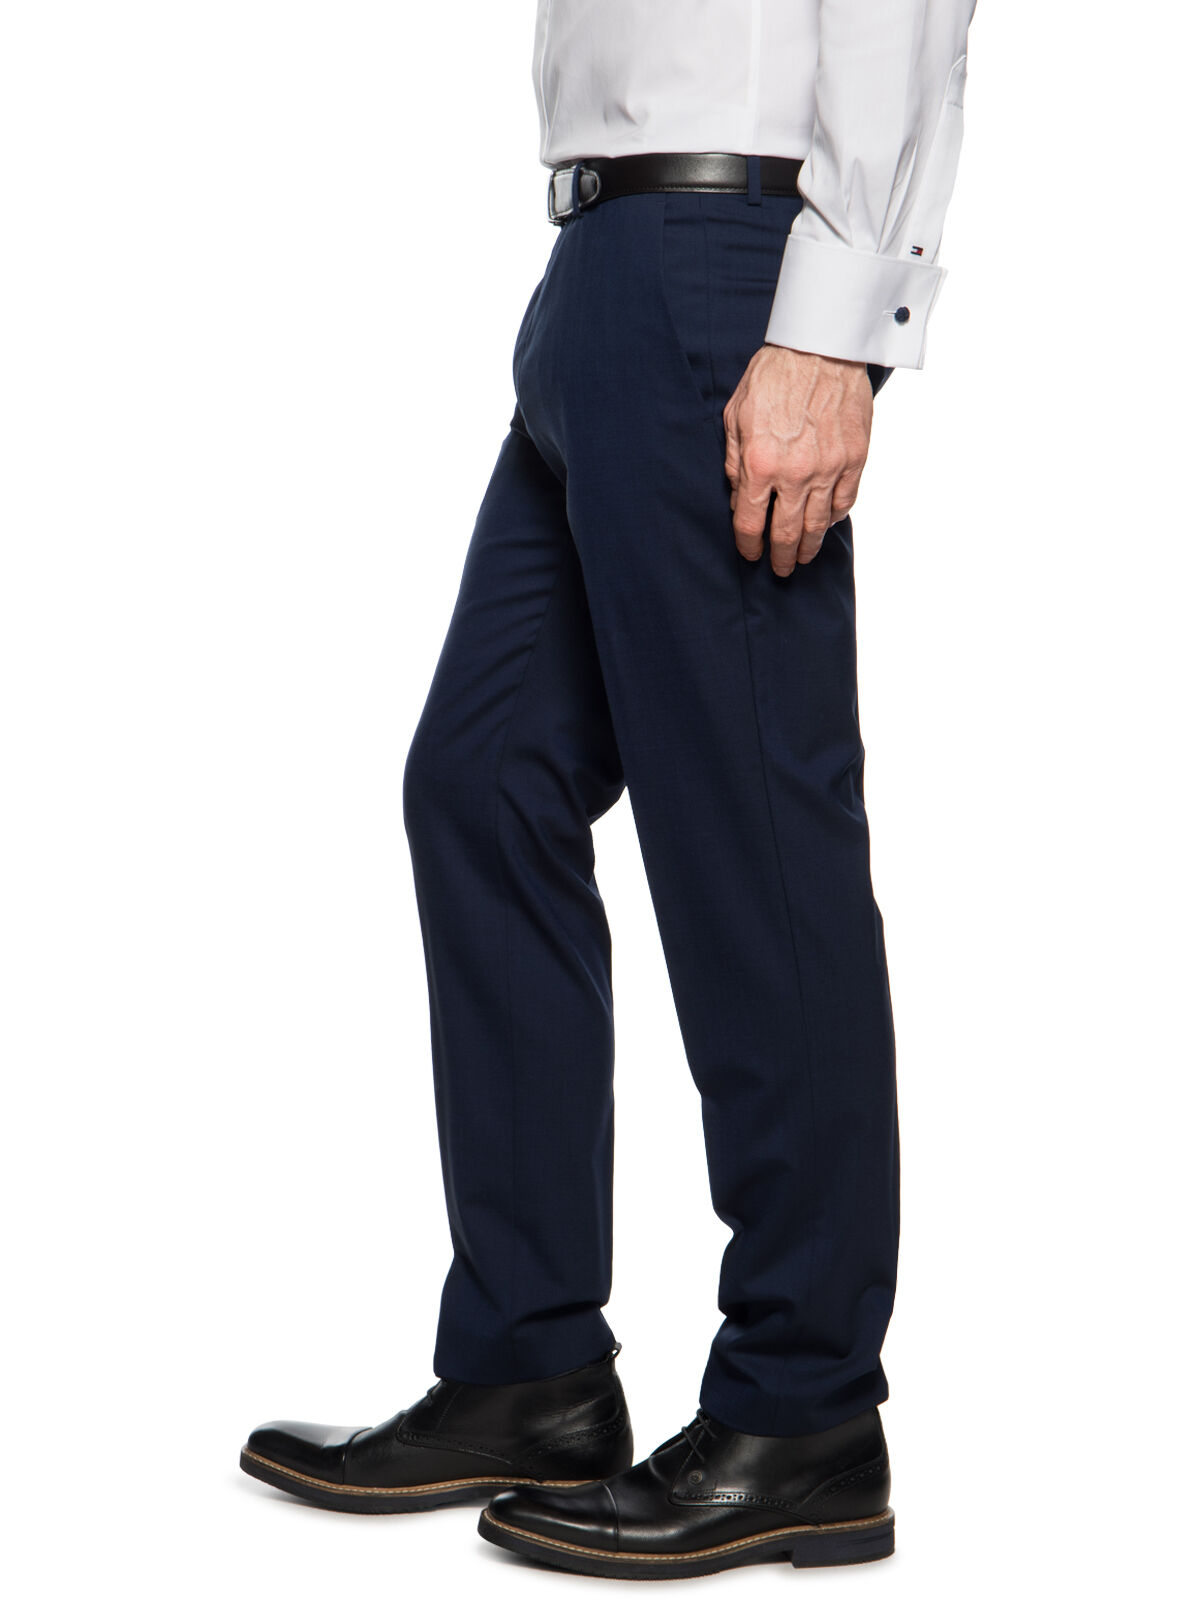 Modular Trousers Paris Fitted